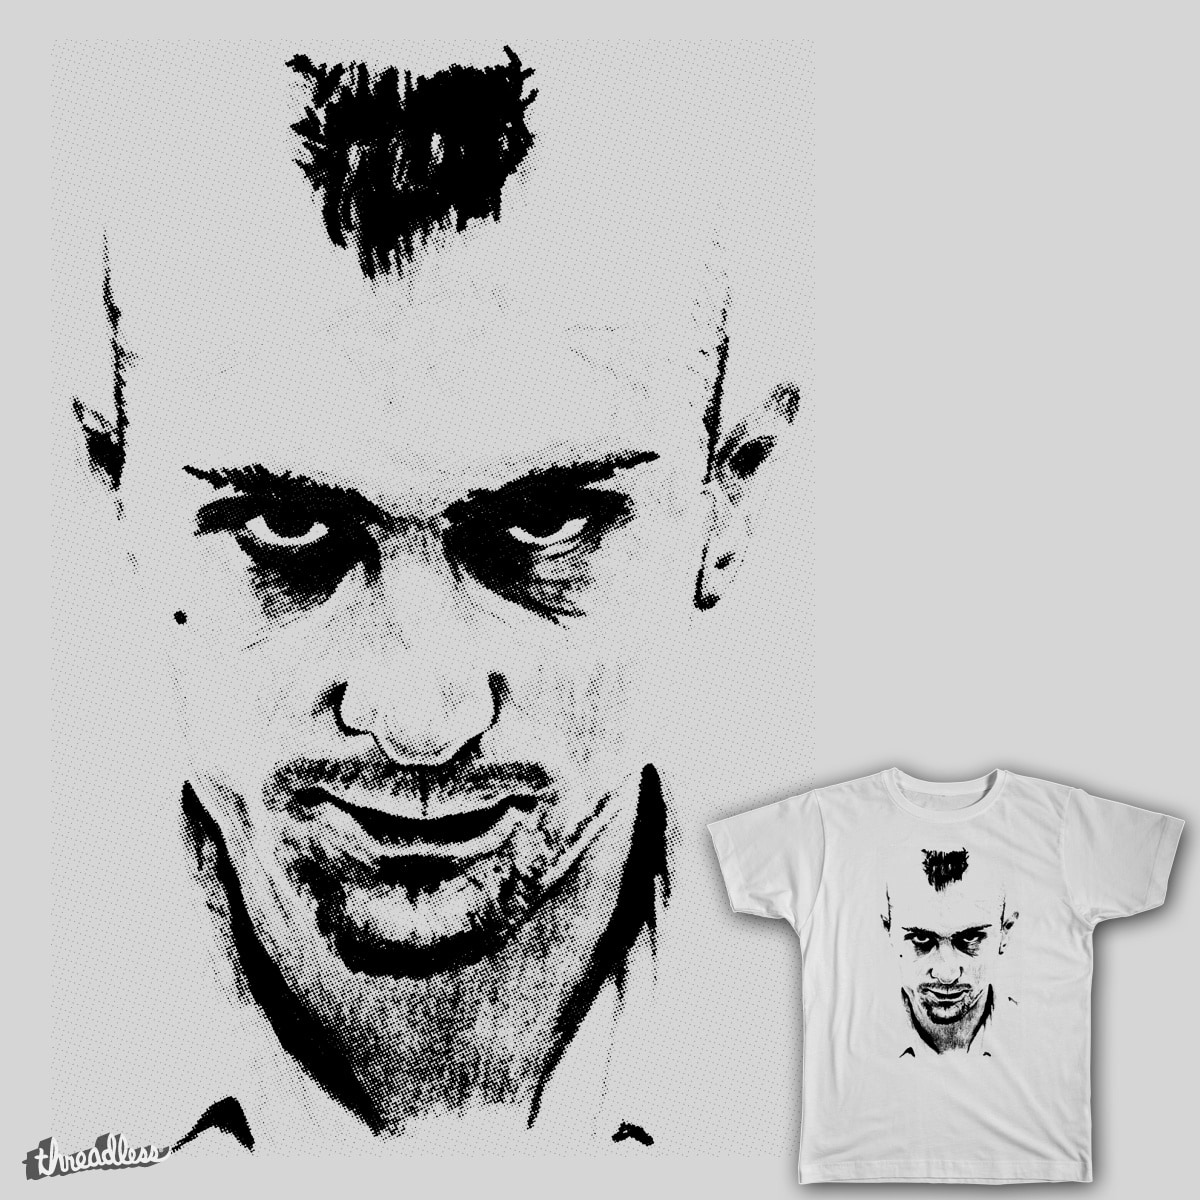 Travis Bickle by Melonseta on Threadless